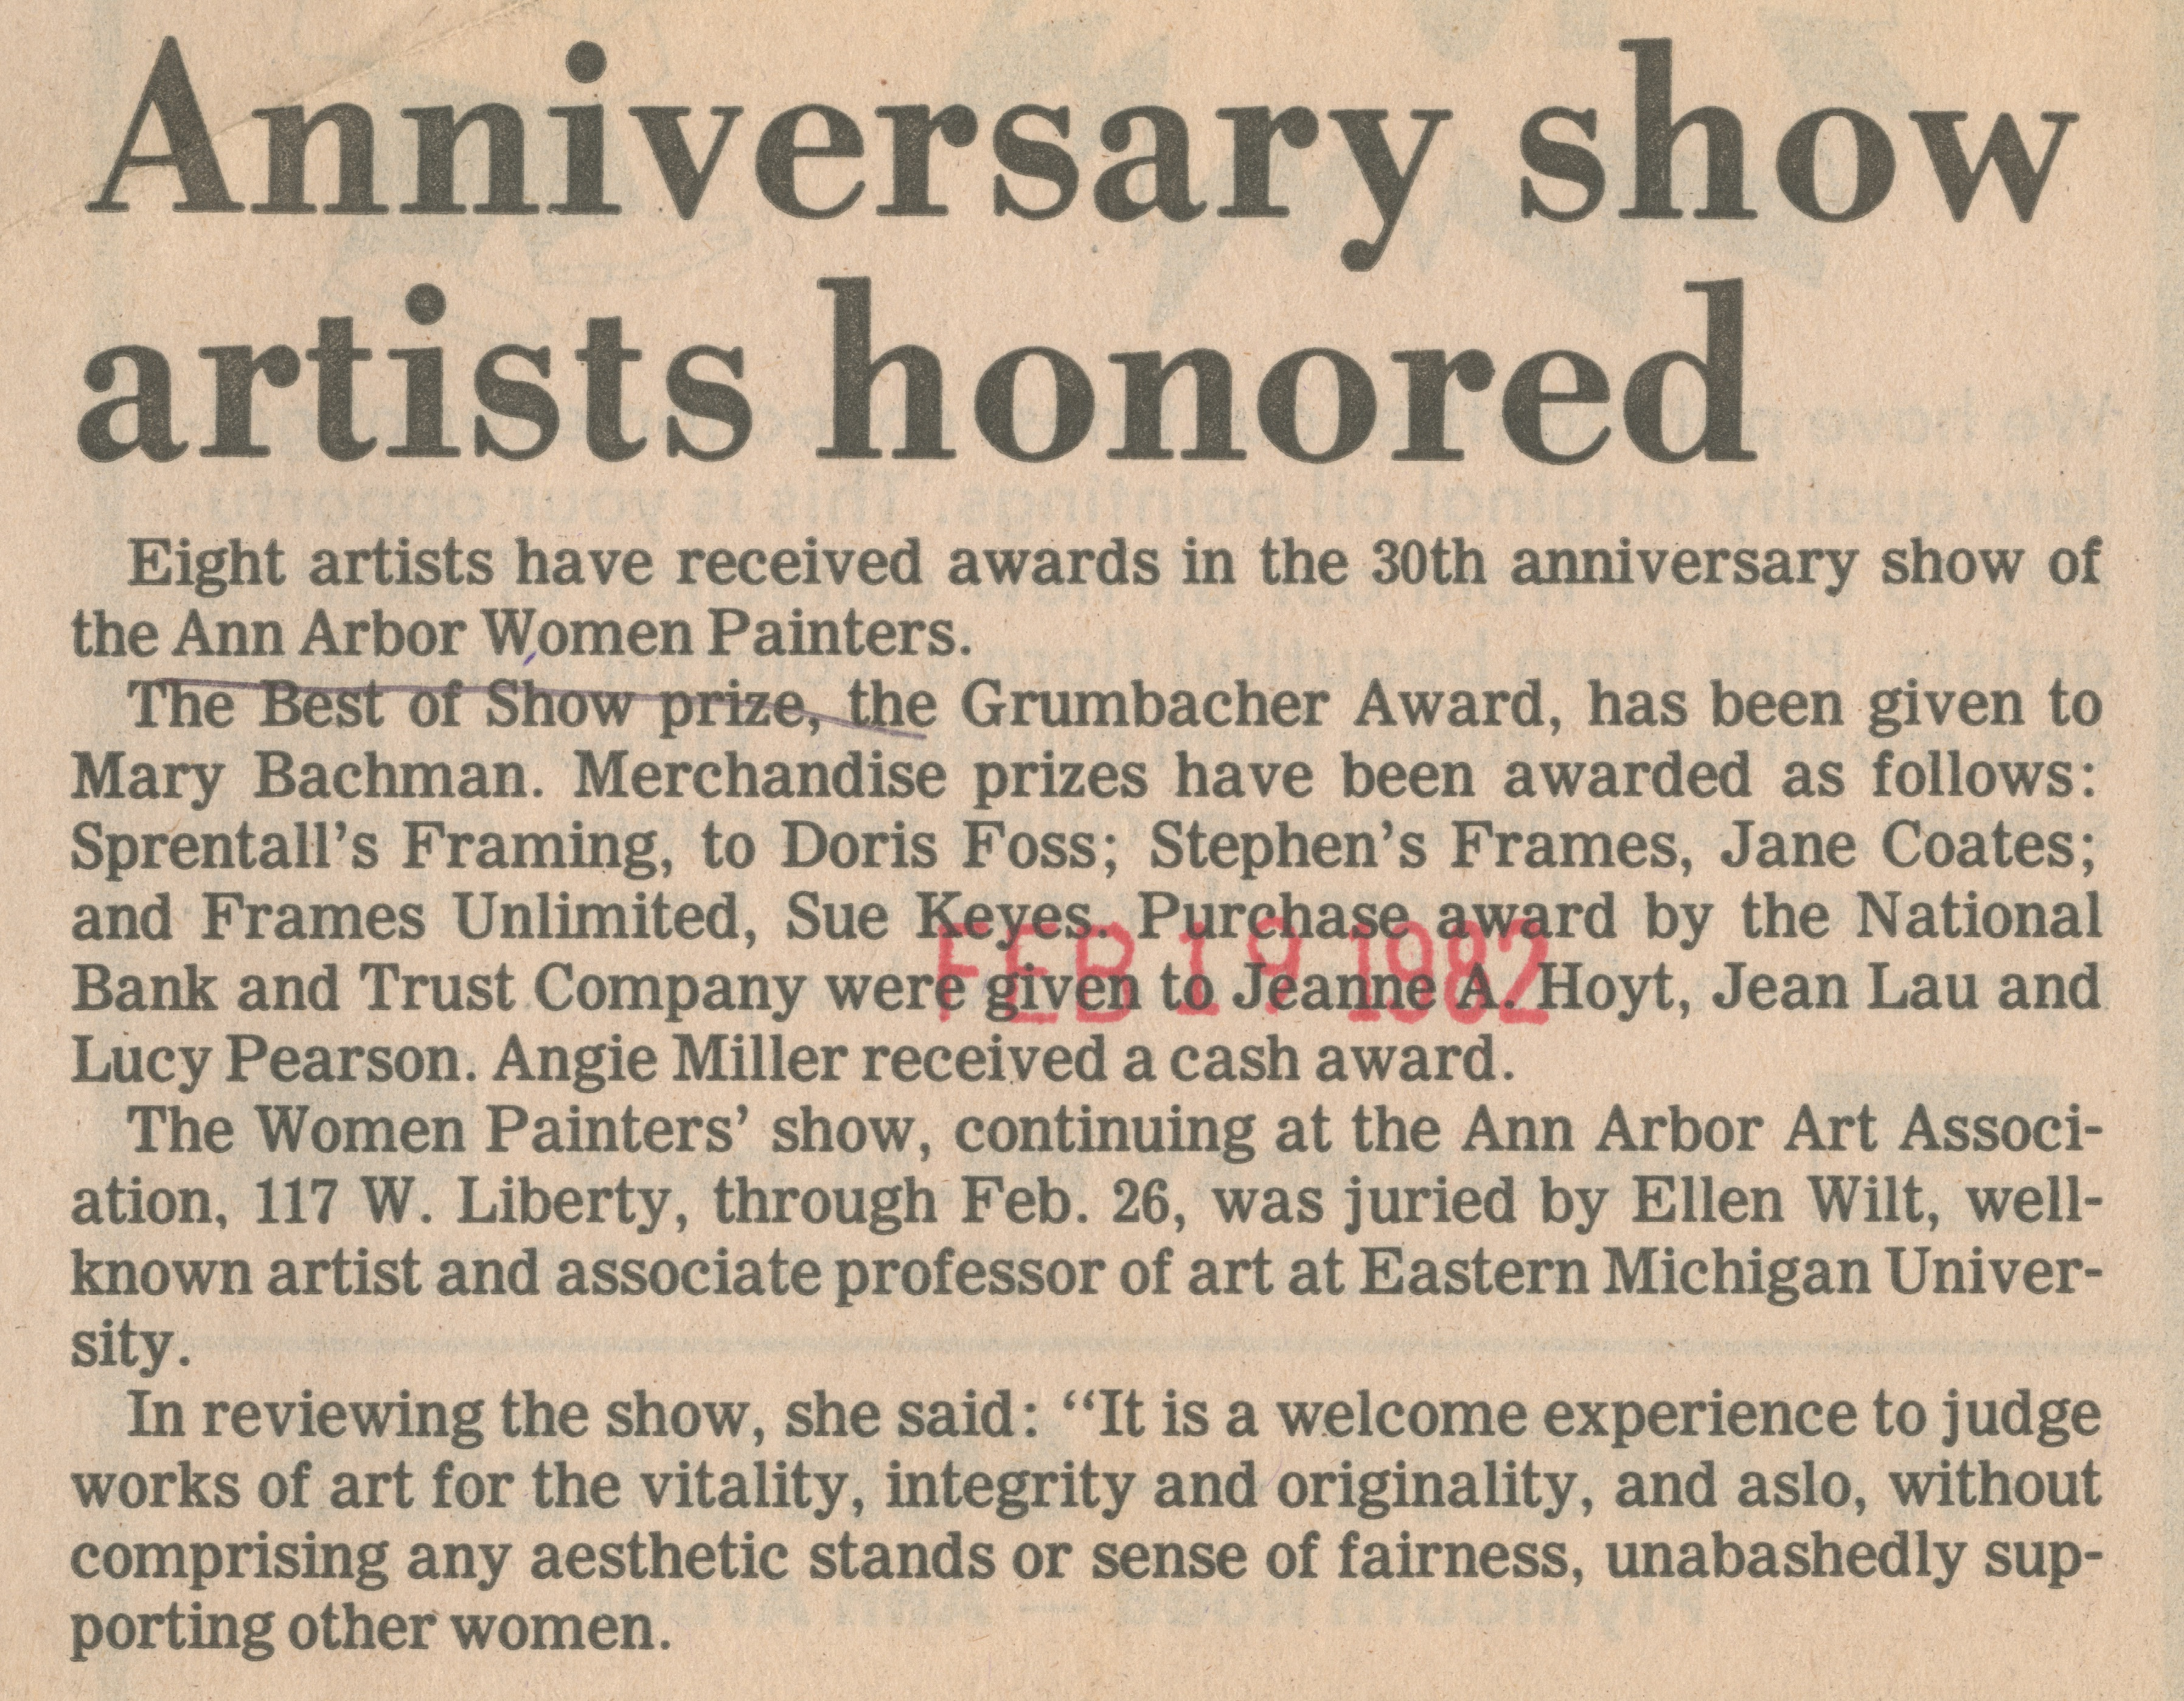 Anniversary show artists honored image